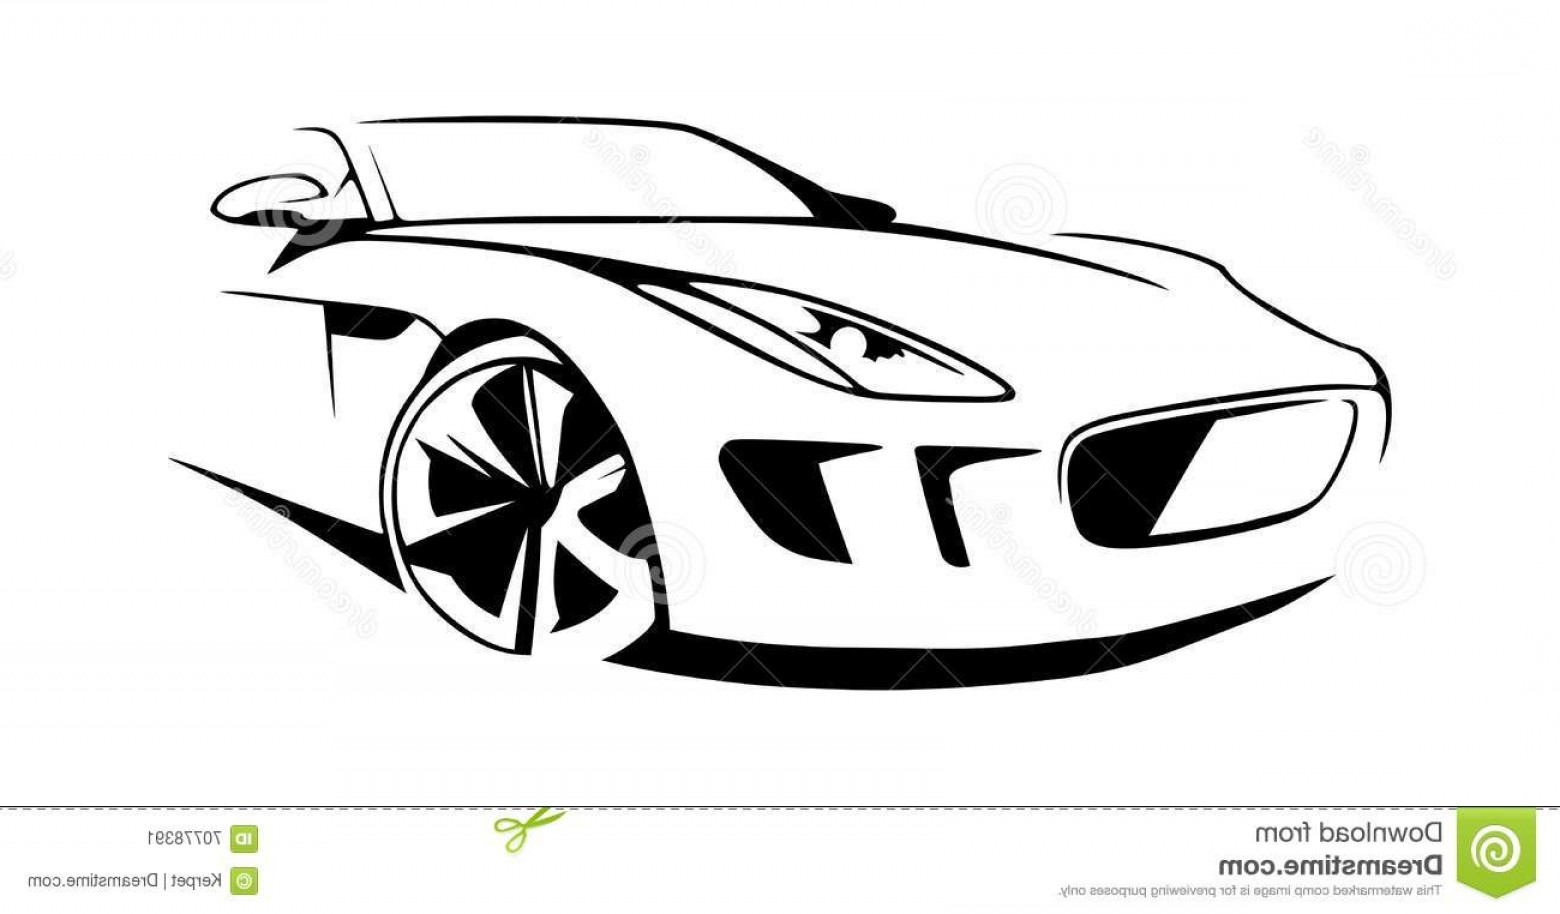 1560x914 Sports Car Silhouette Vector Illustration Arenawp